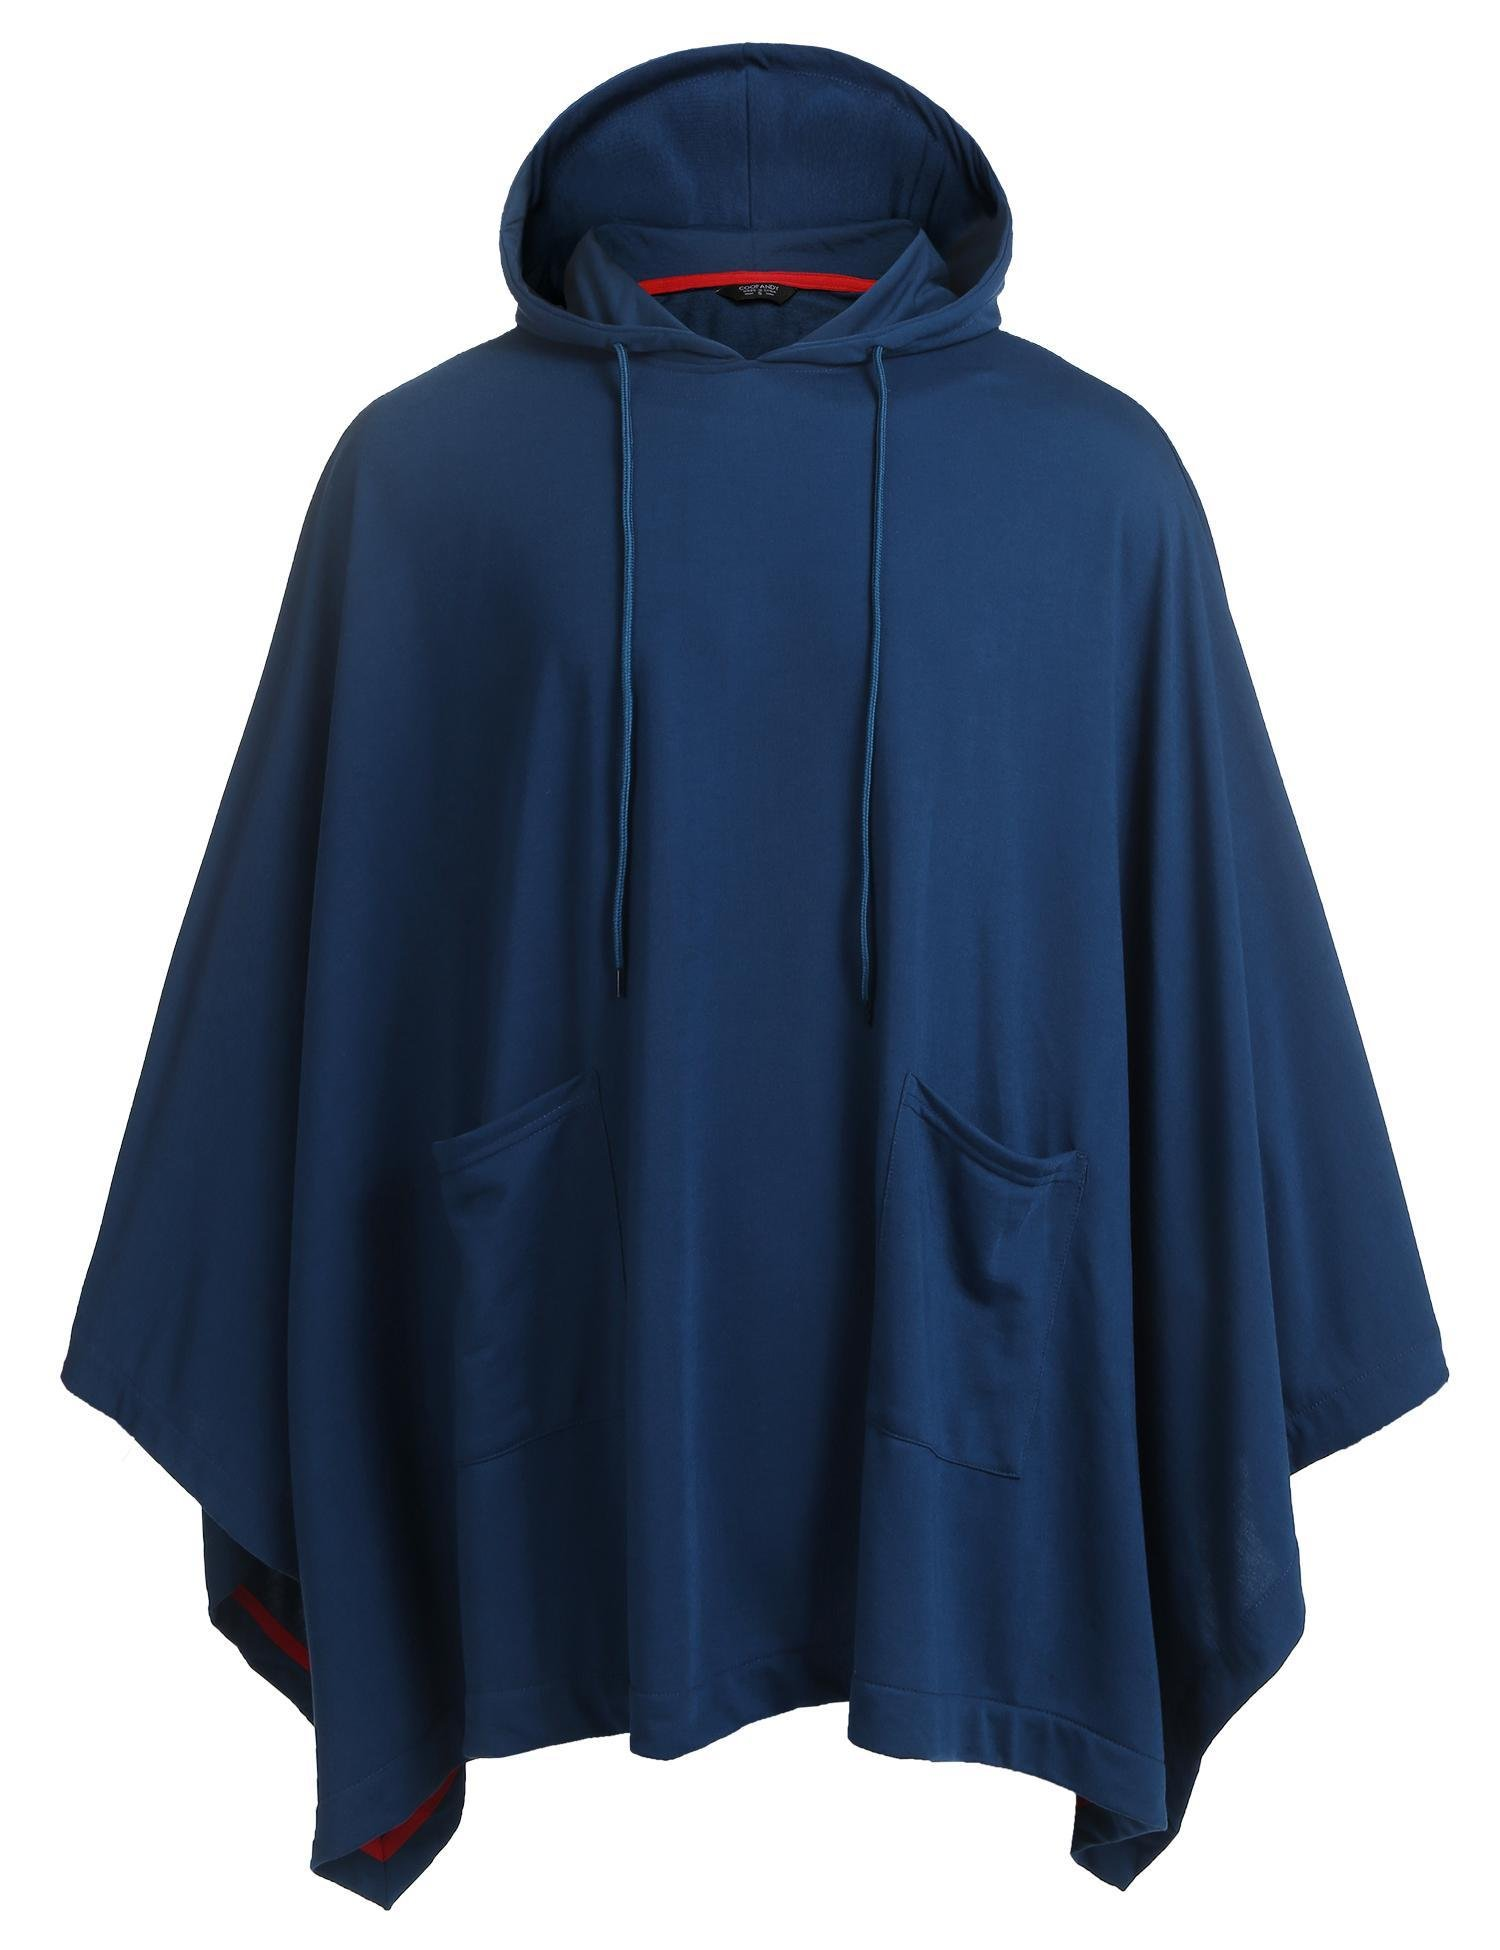 Coofandy Unisex Casual Hooded Cloak Poncho Cape Coat with Pocket, Dark Blue, Large